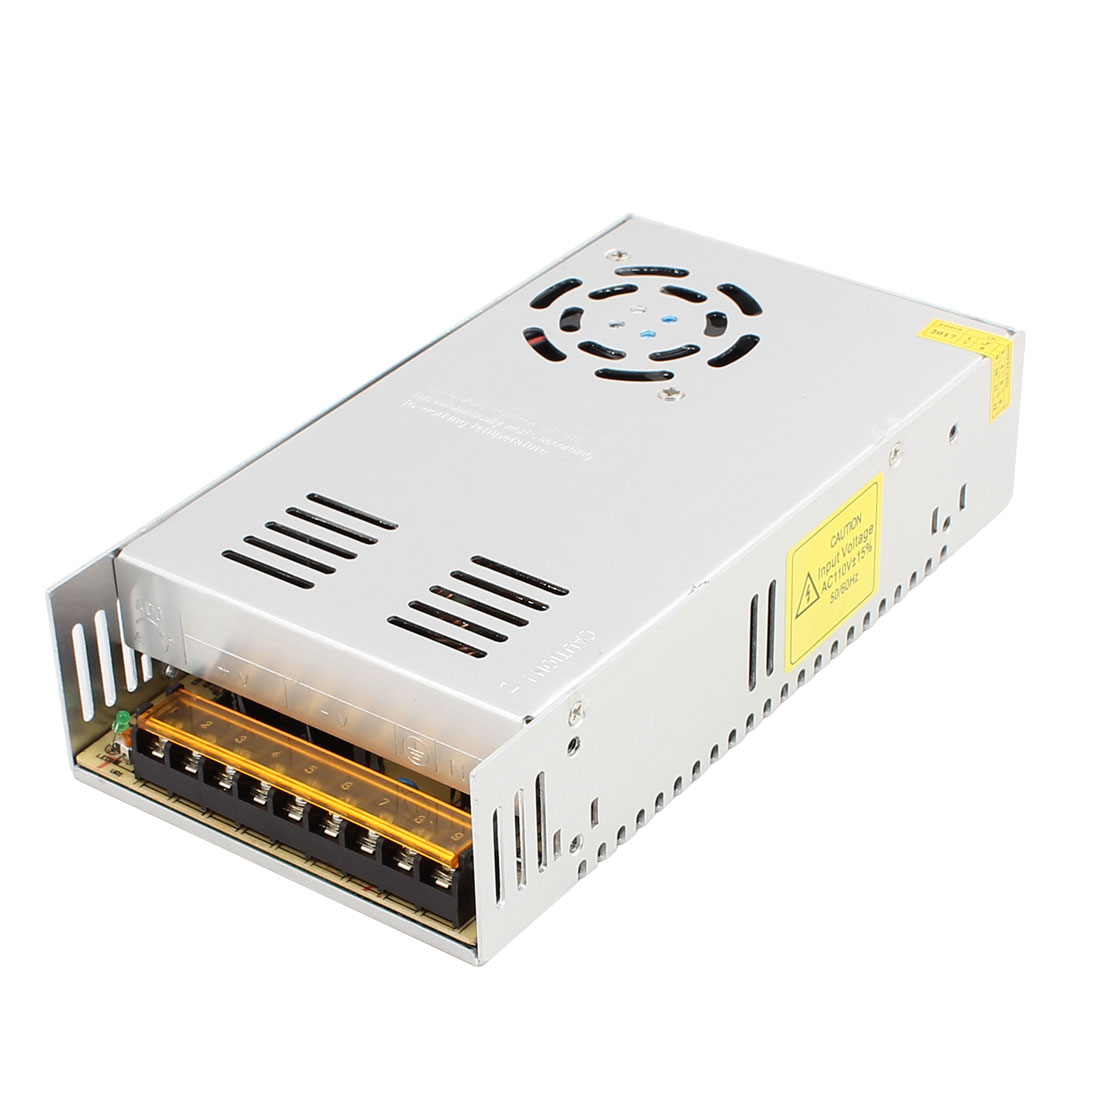 AC90-130V DC24V 12.5A Switching Power Supply Driver for LED Light Strip